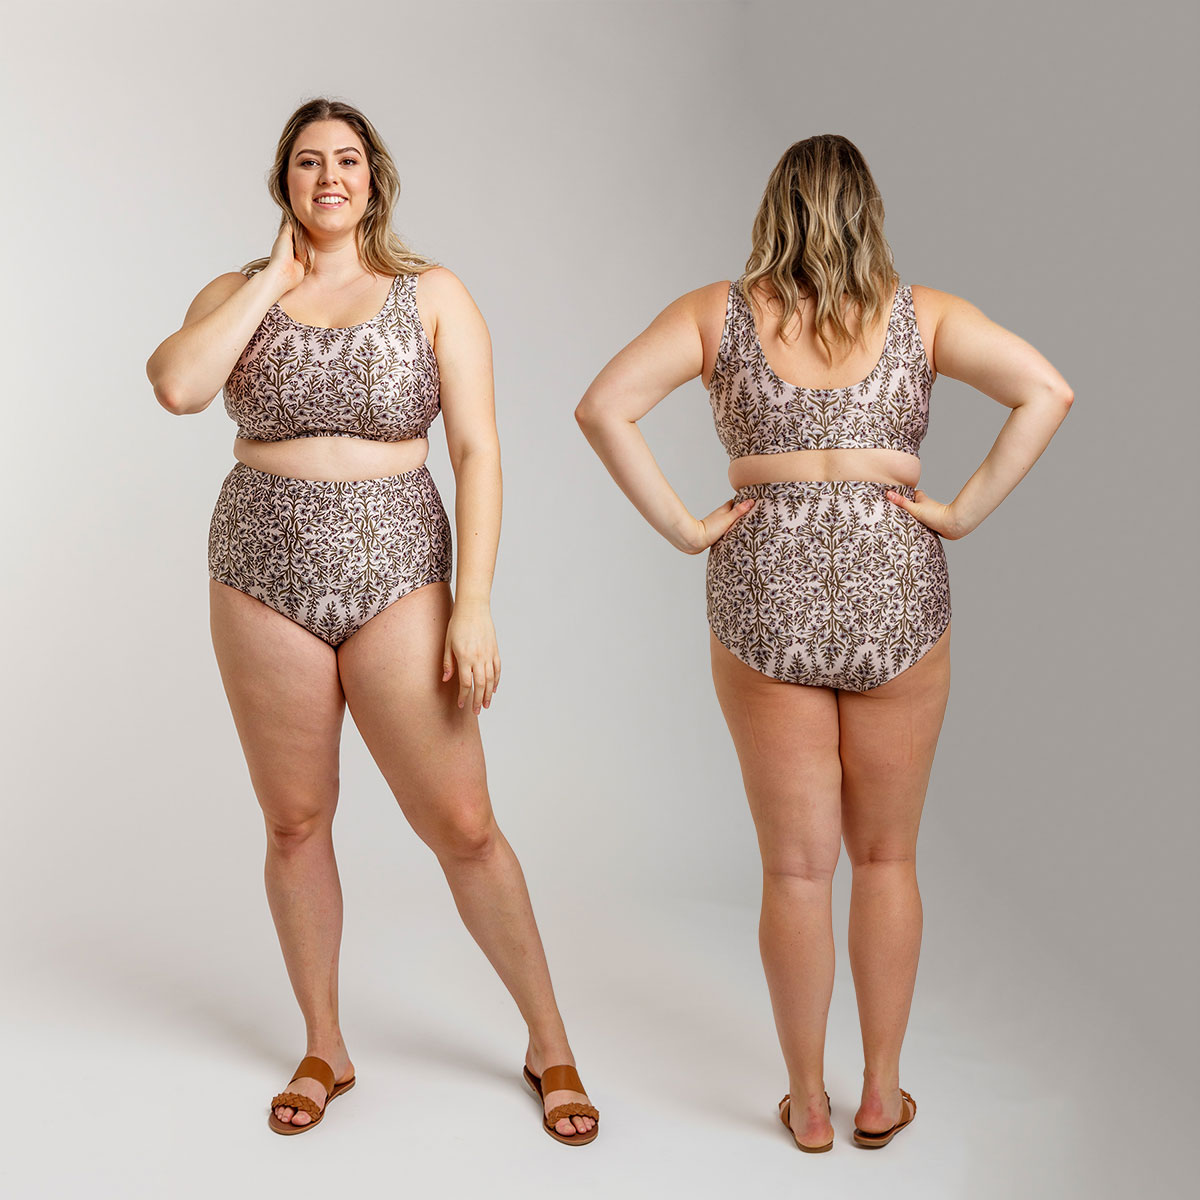 Introducing Megan Nielsen Cottesloe Curve swimsuit // sizes 14-30